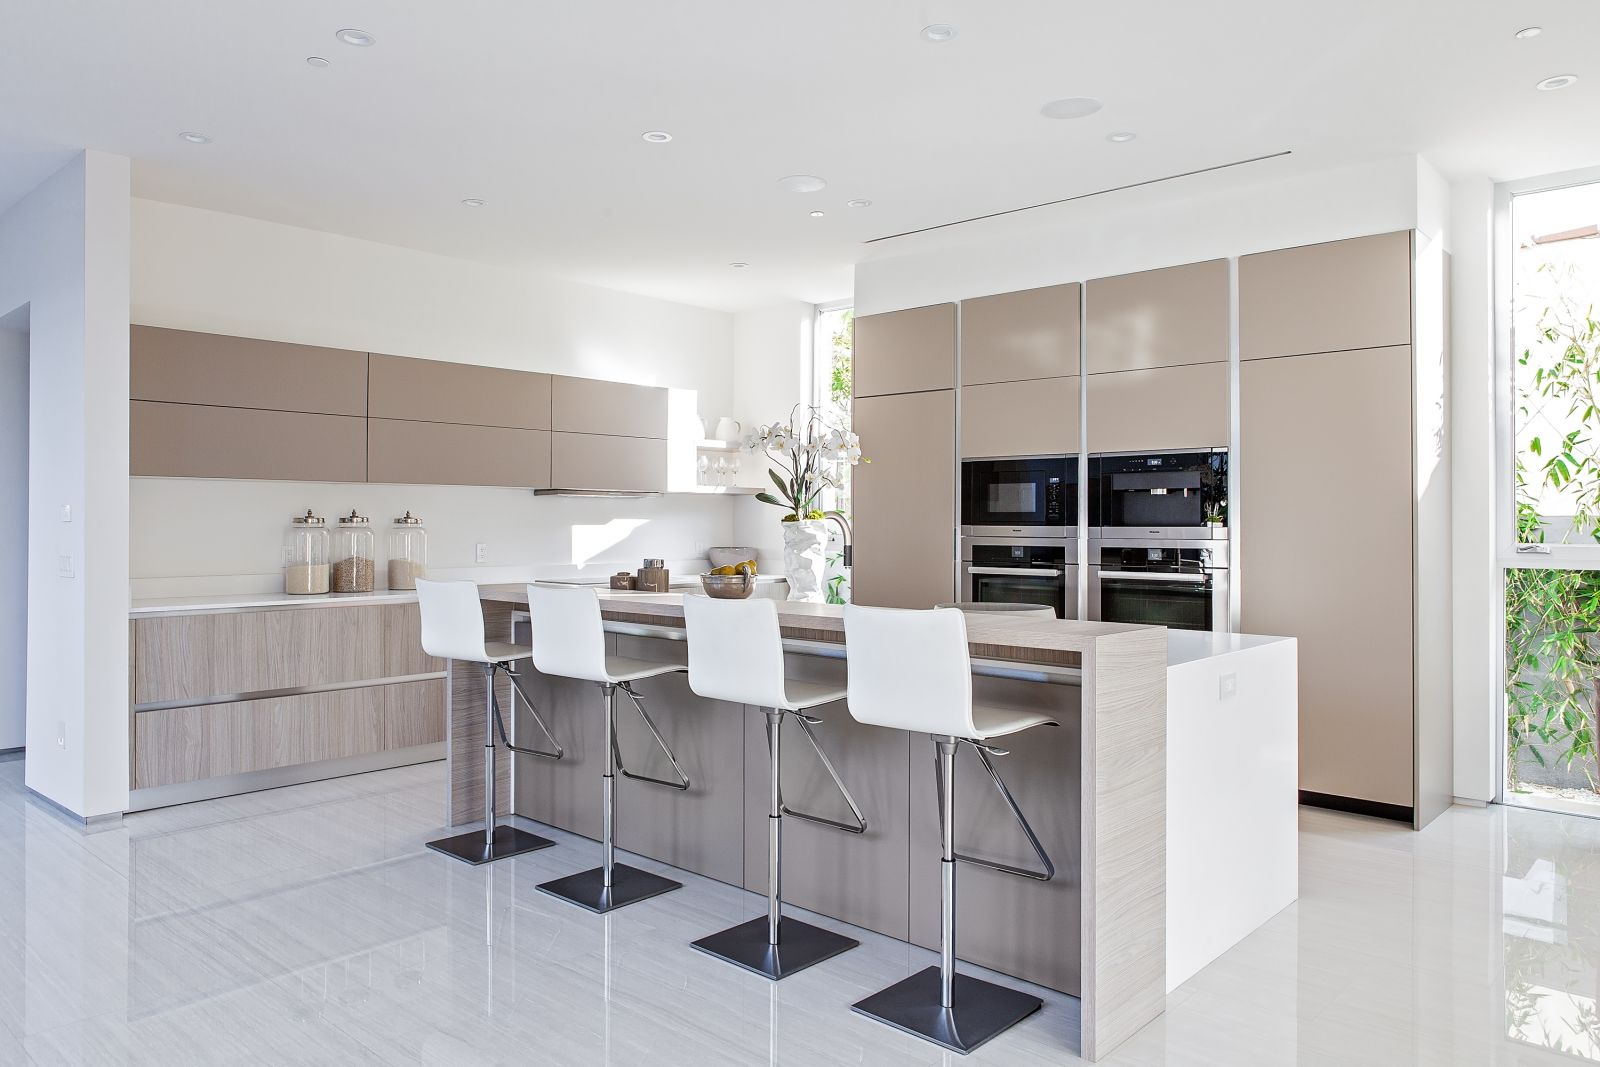 RTA kitchen cabinets - buy a kitchen set in Los Angeles